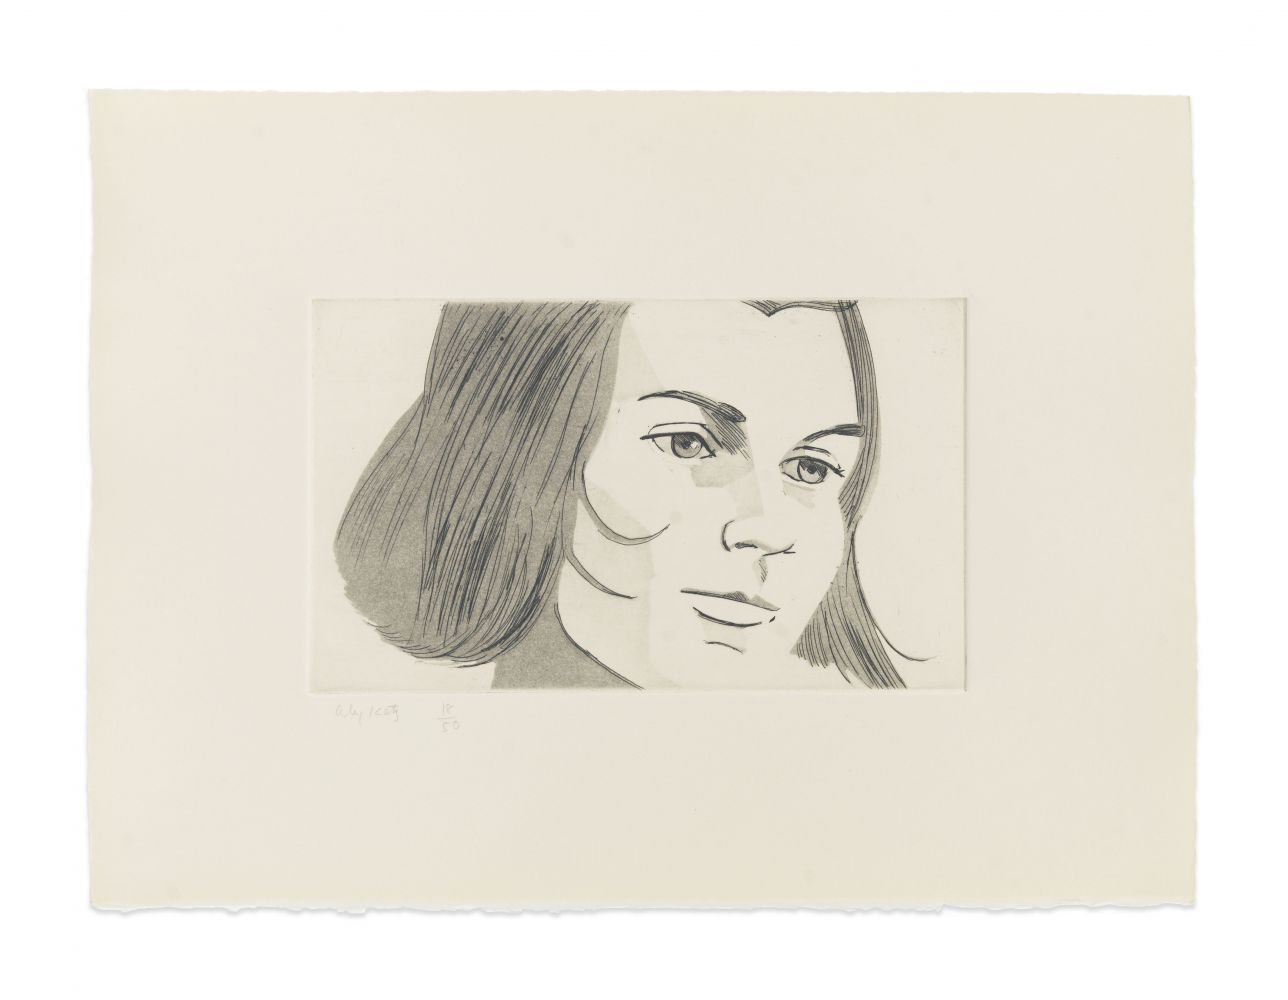 Aquatint by Alex Katz of a portrait a woman at 3/4 view with chin length hair and her head slightly tilted